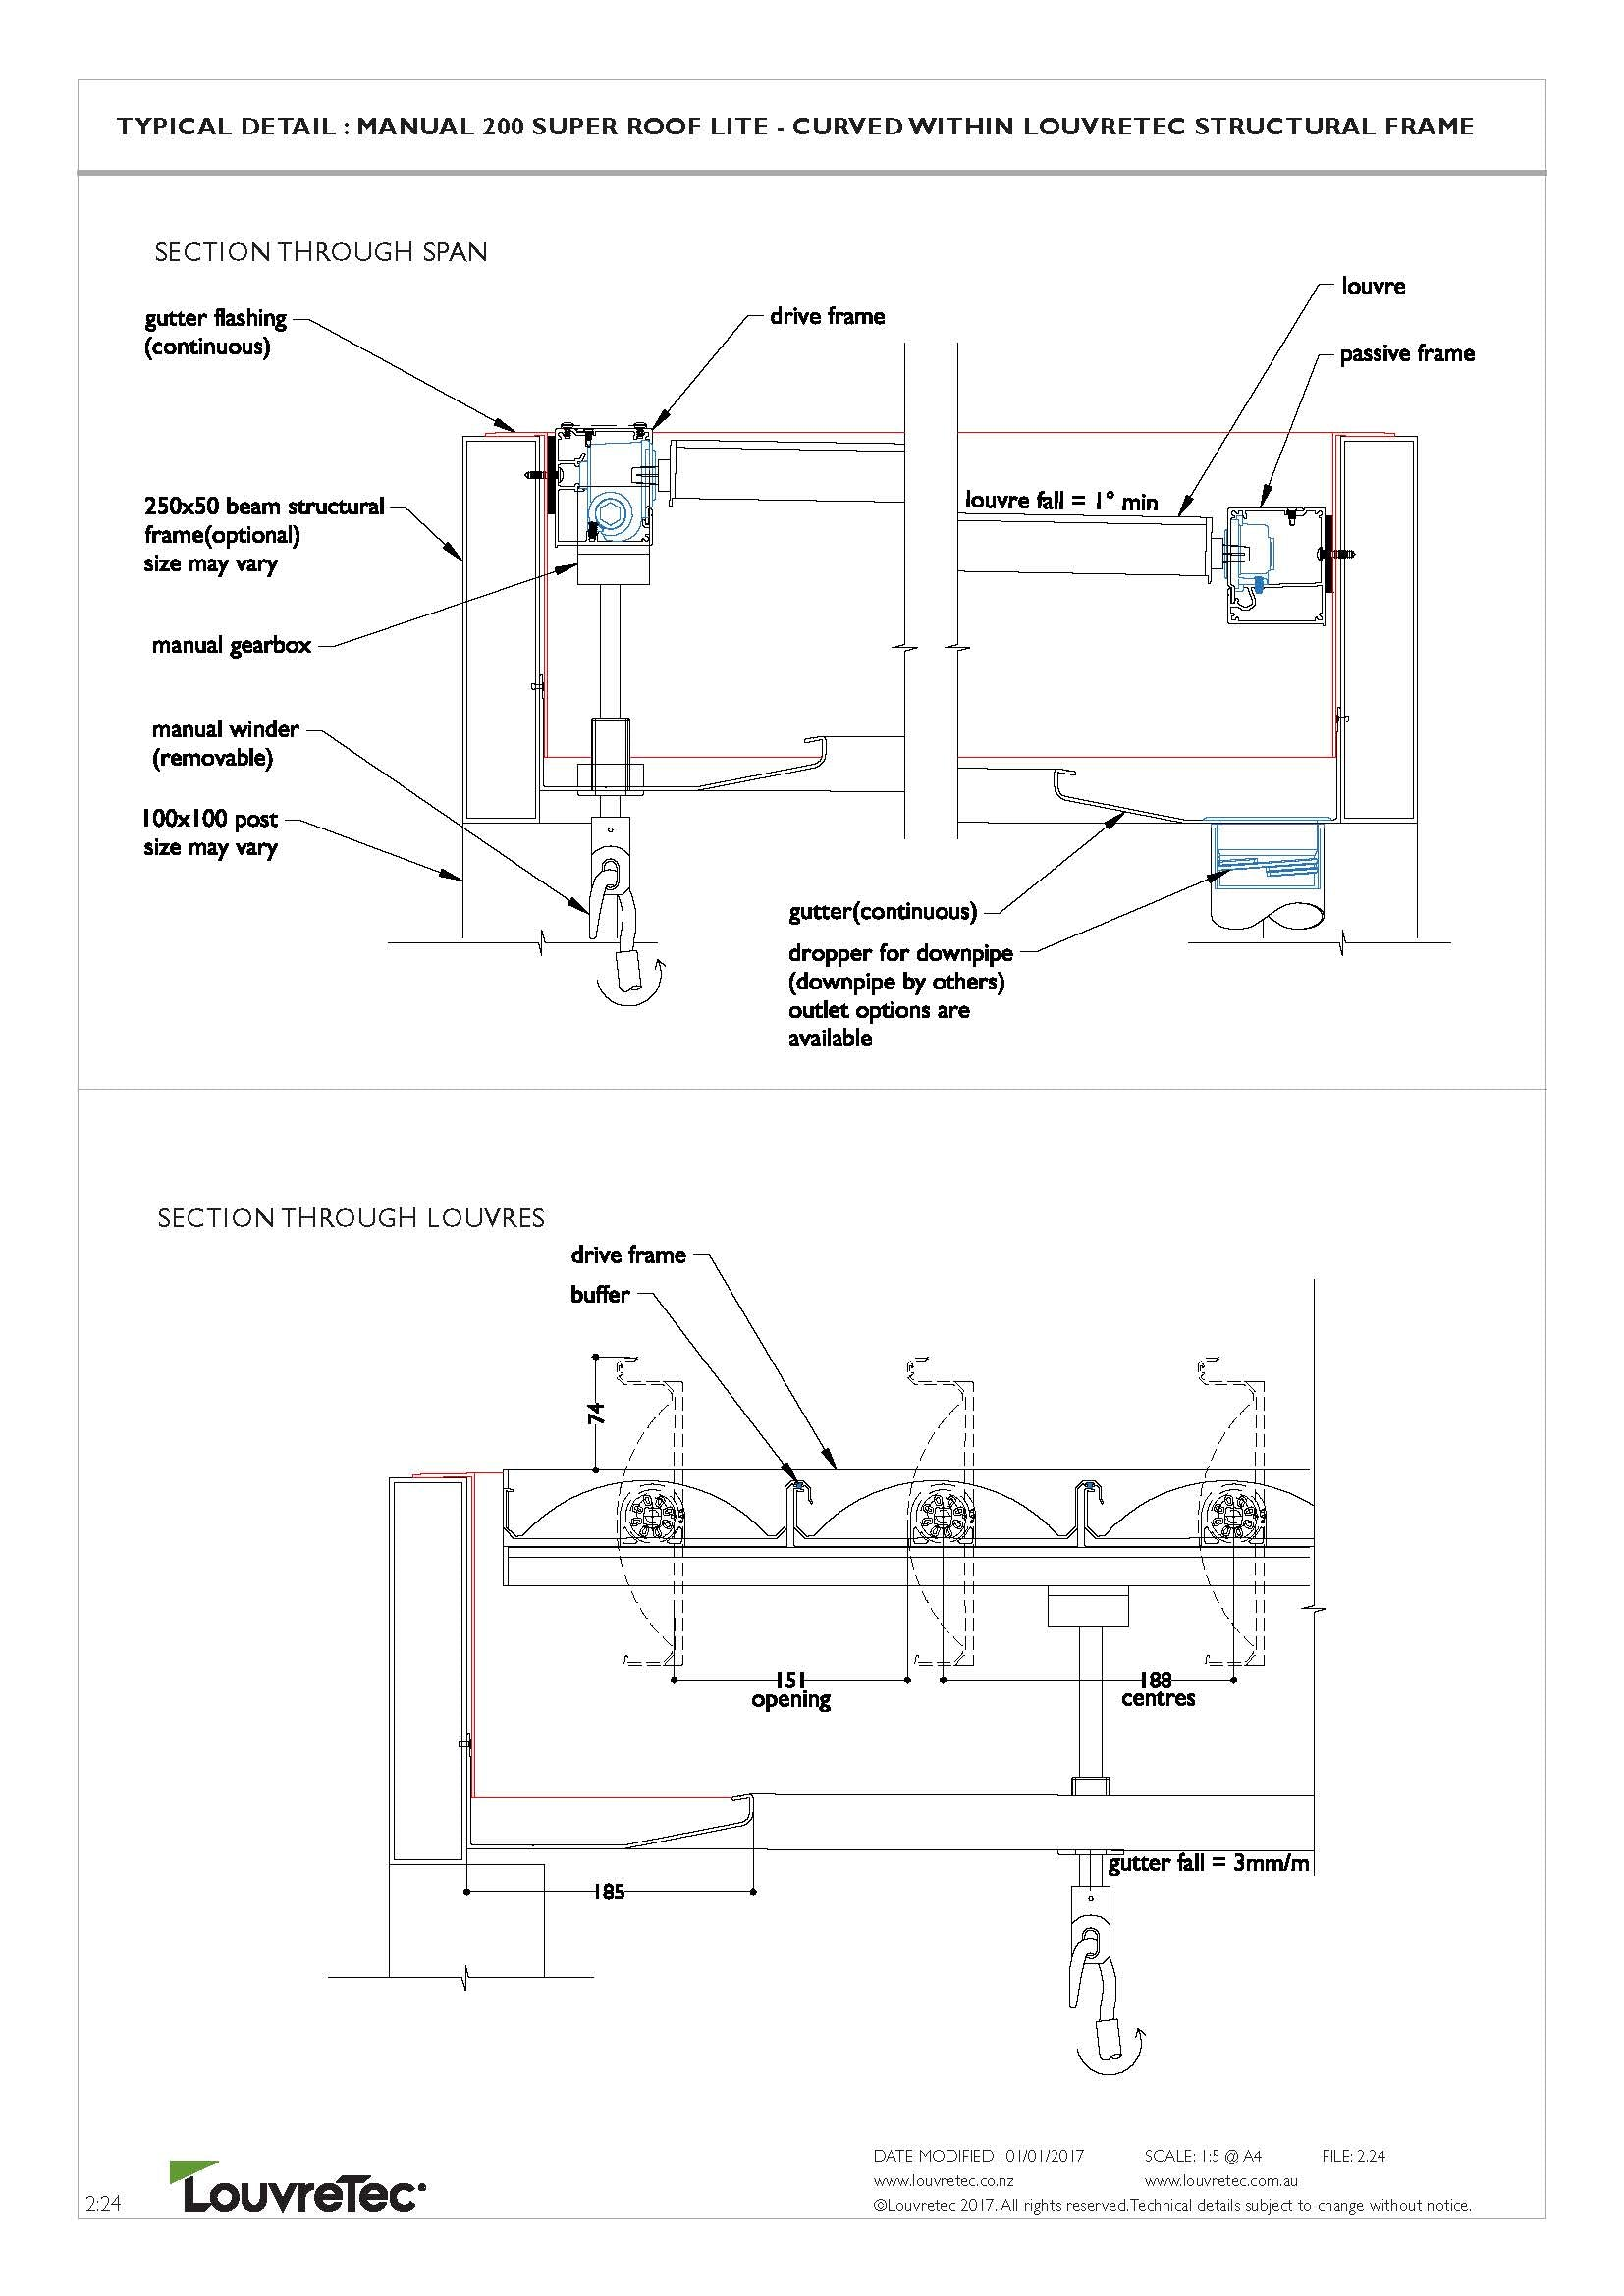 2D Typical Detail Hand Operable 2.24